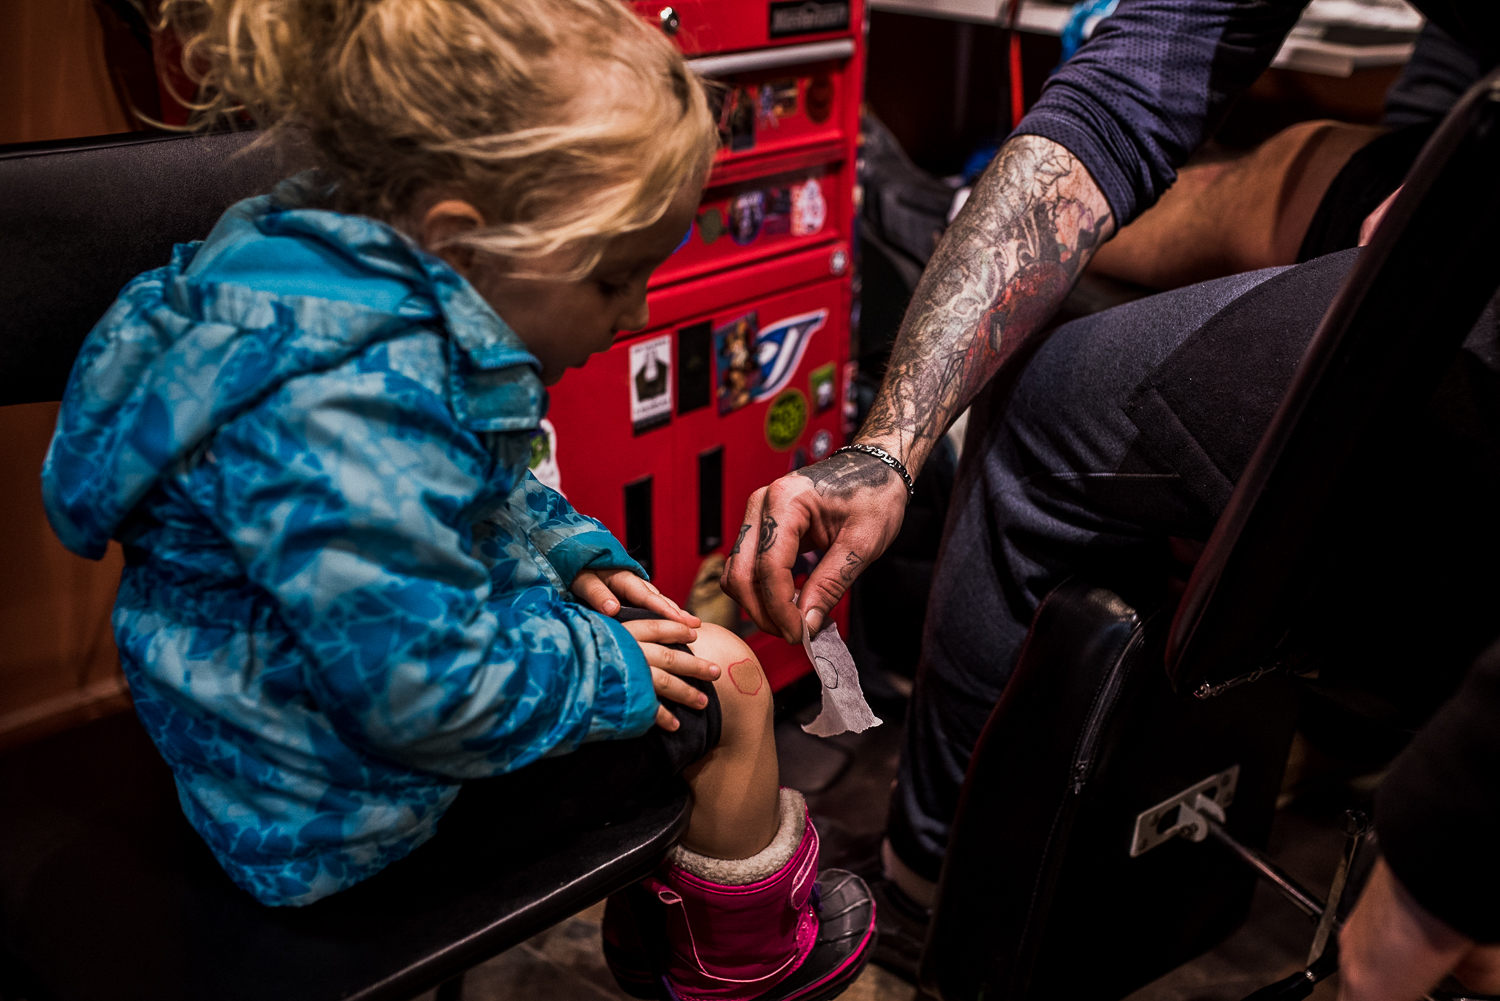 Little girl sitting on a chair in a tattoo parlor